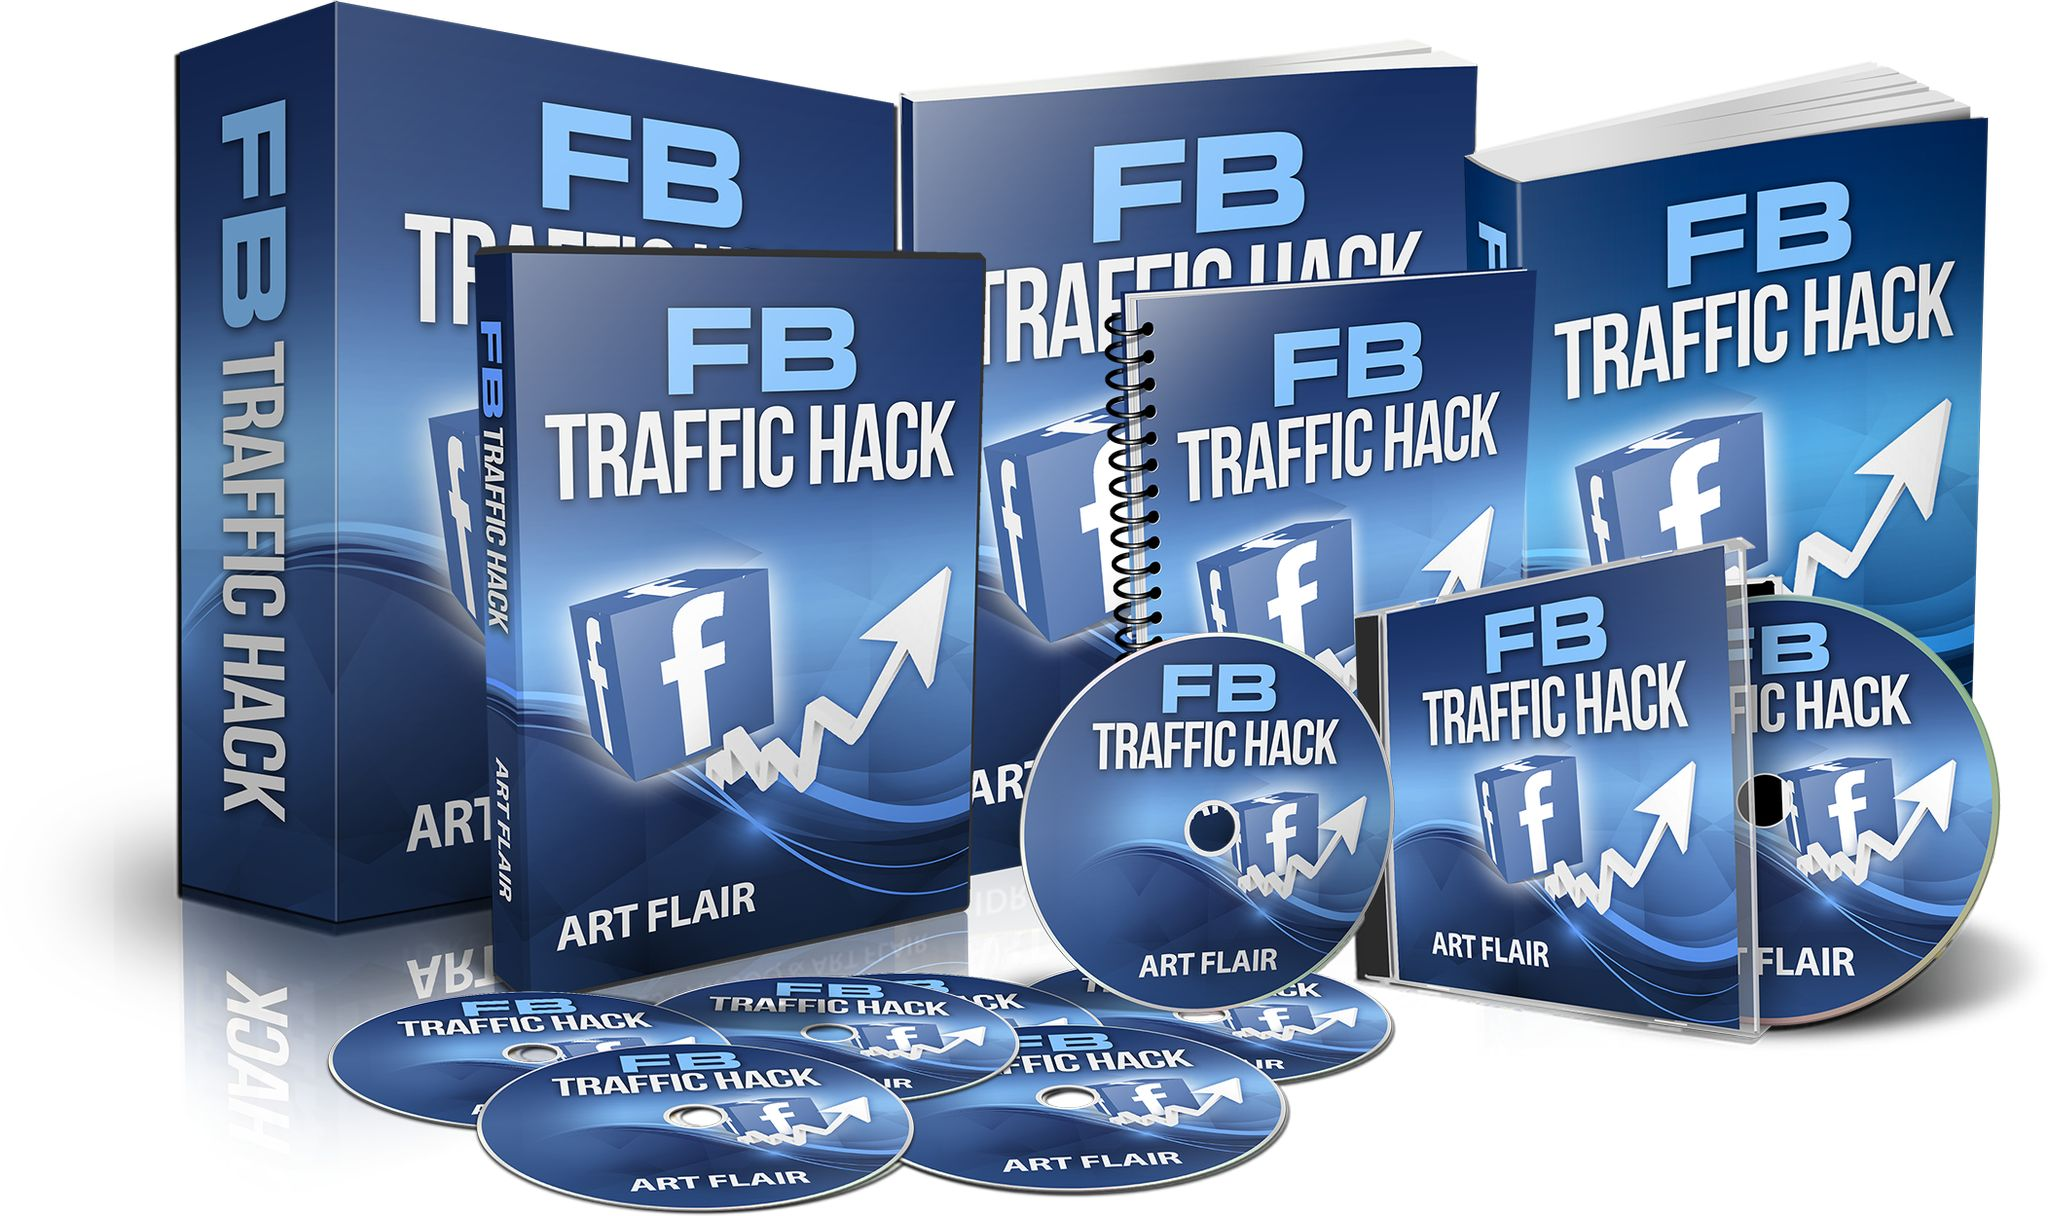 FB Traffic Hack